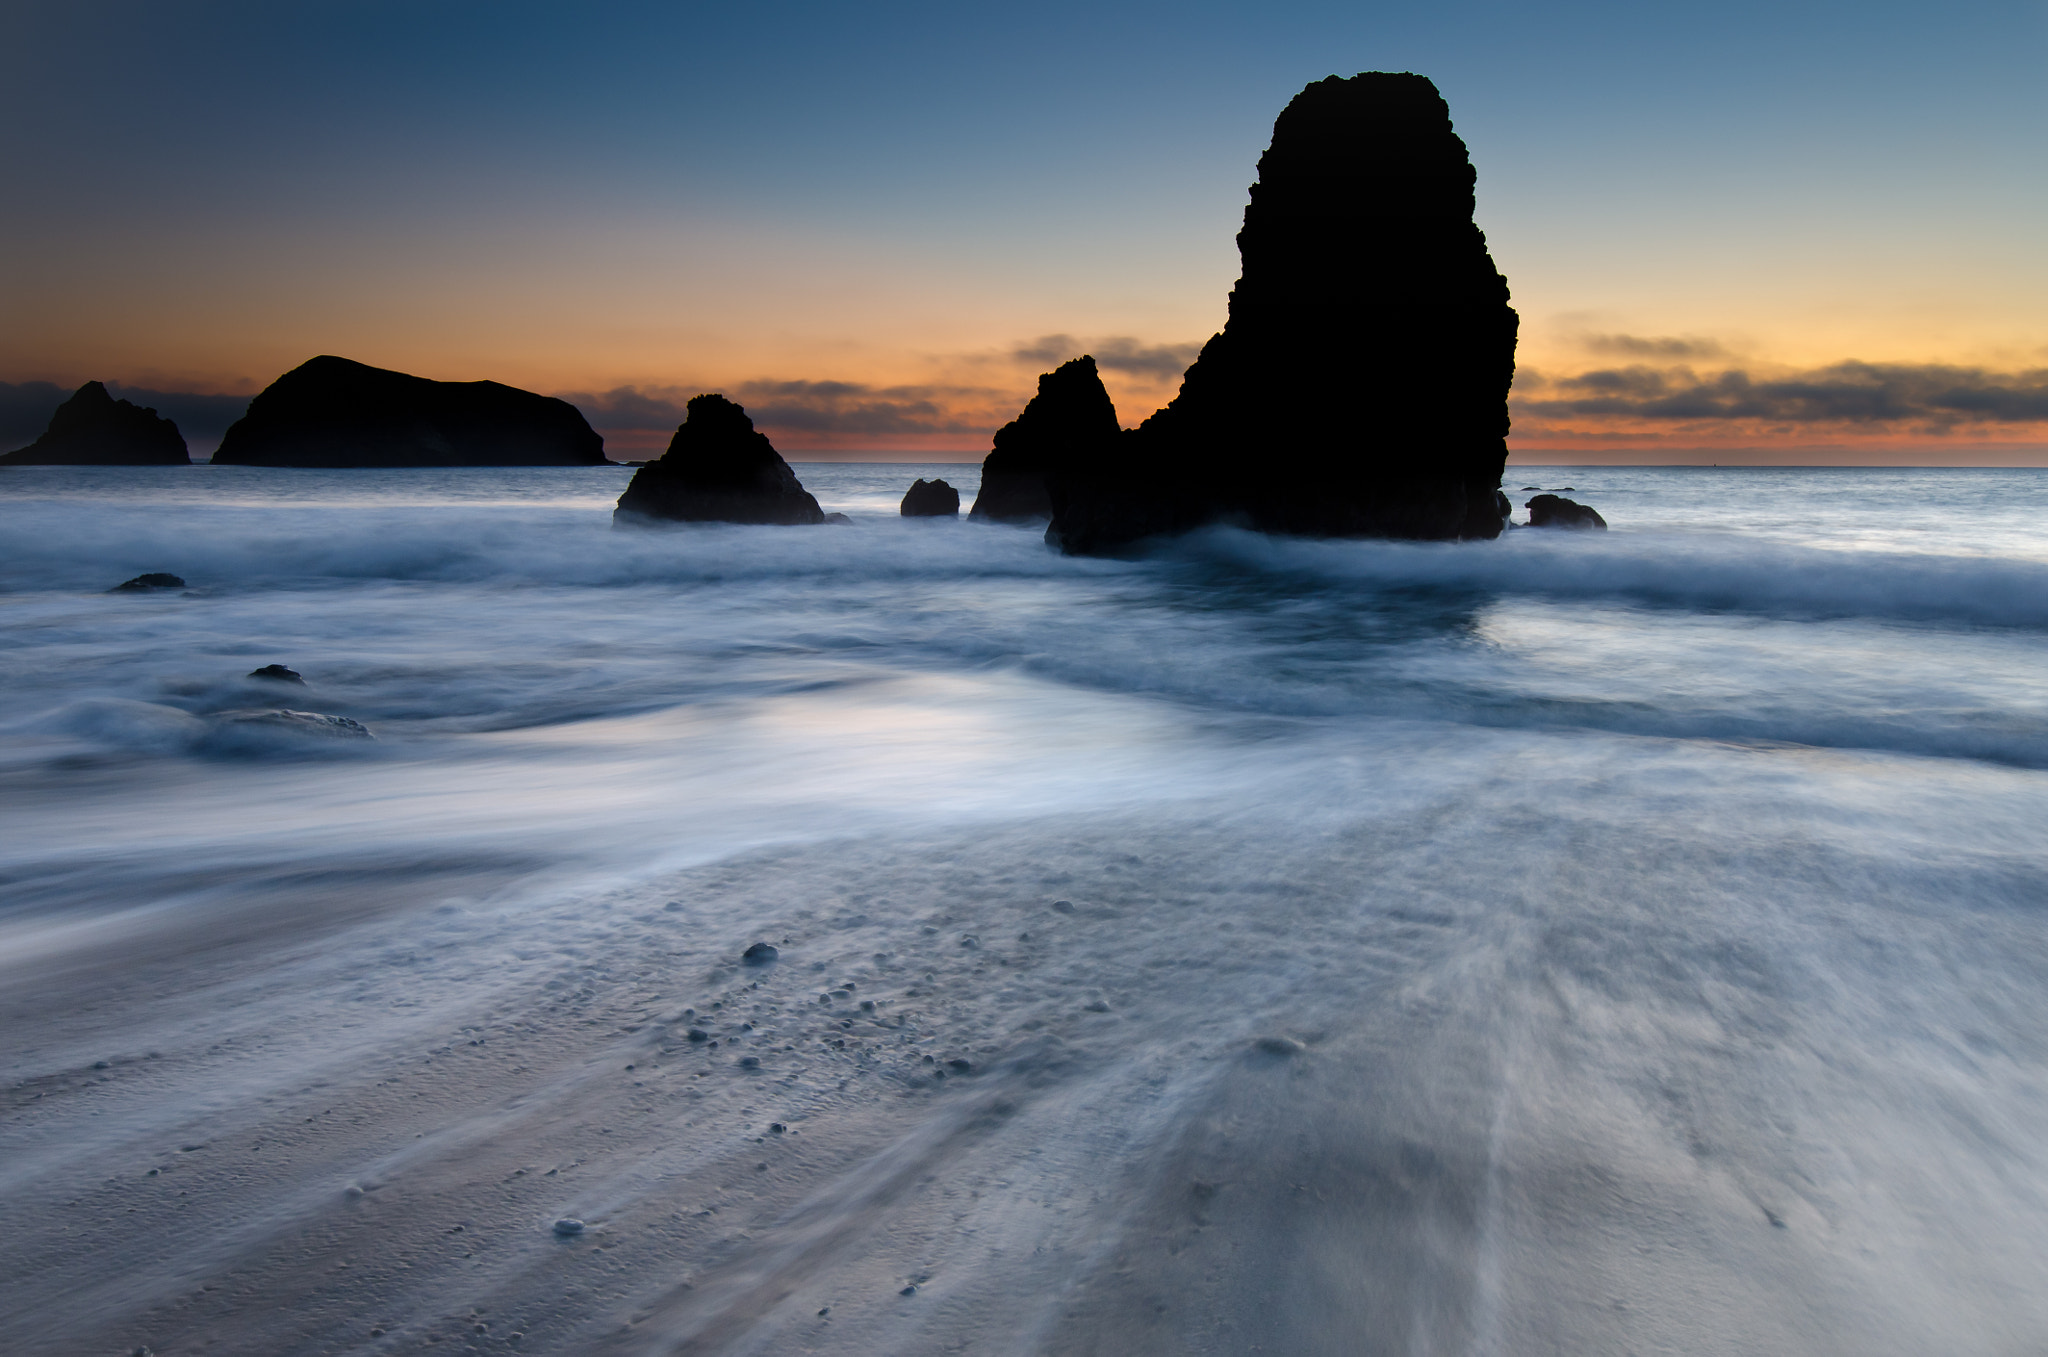 Photograph Rodeo Beach by Sudheer G on 500px